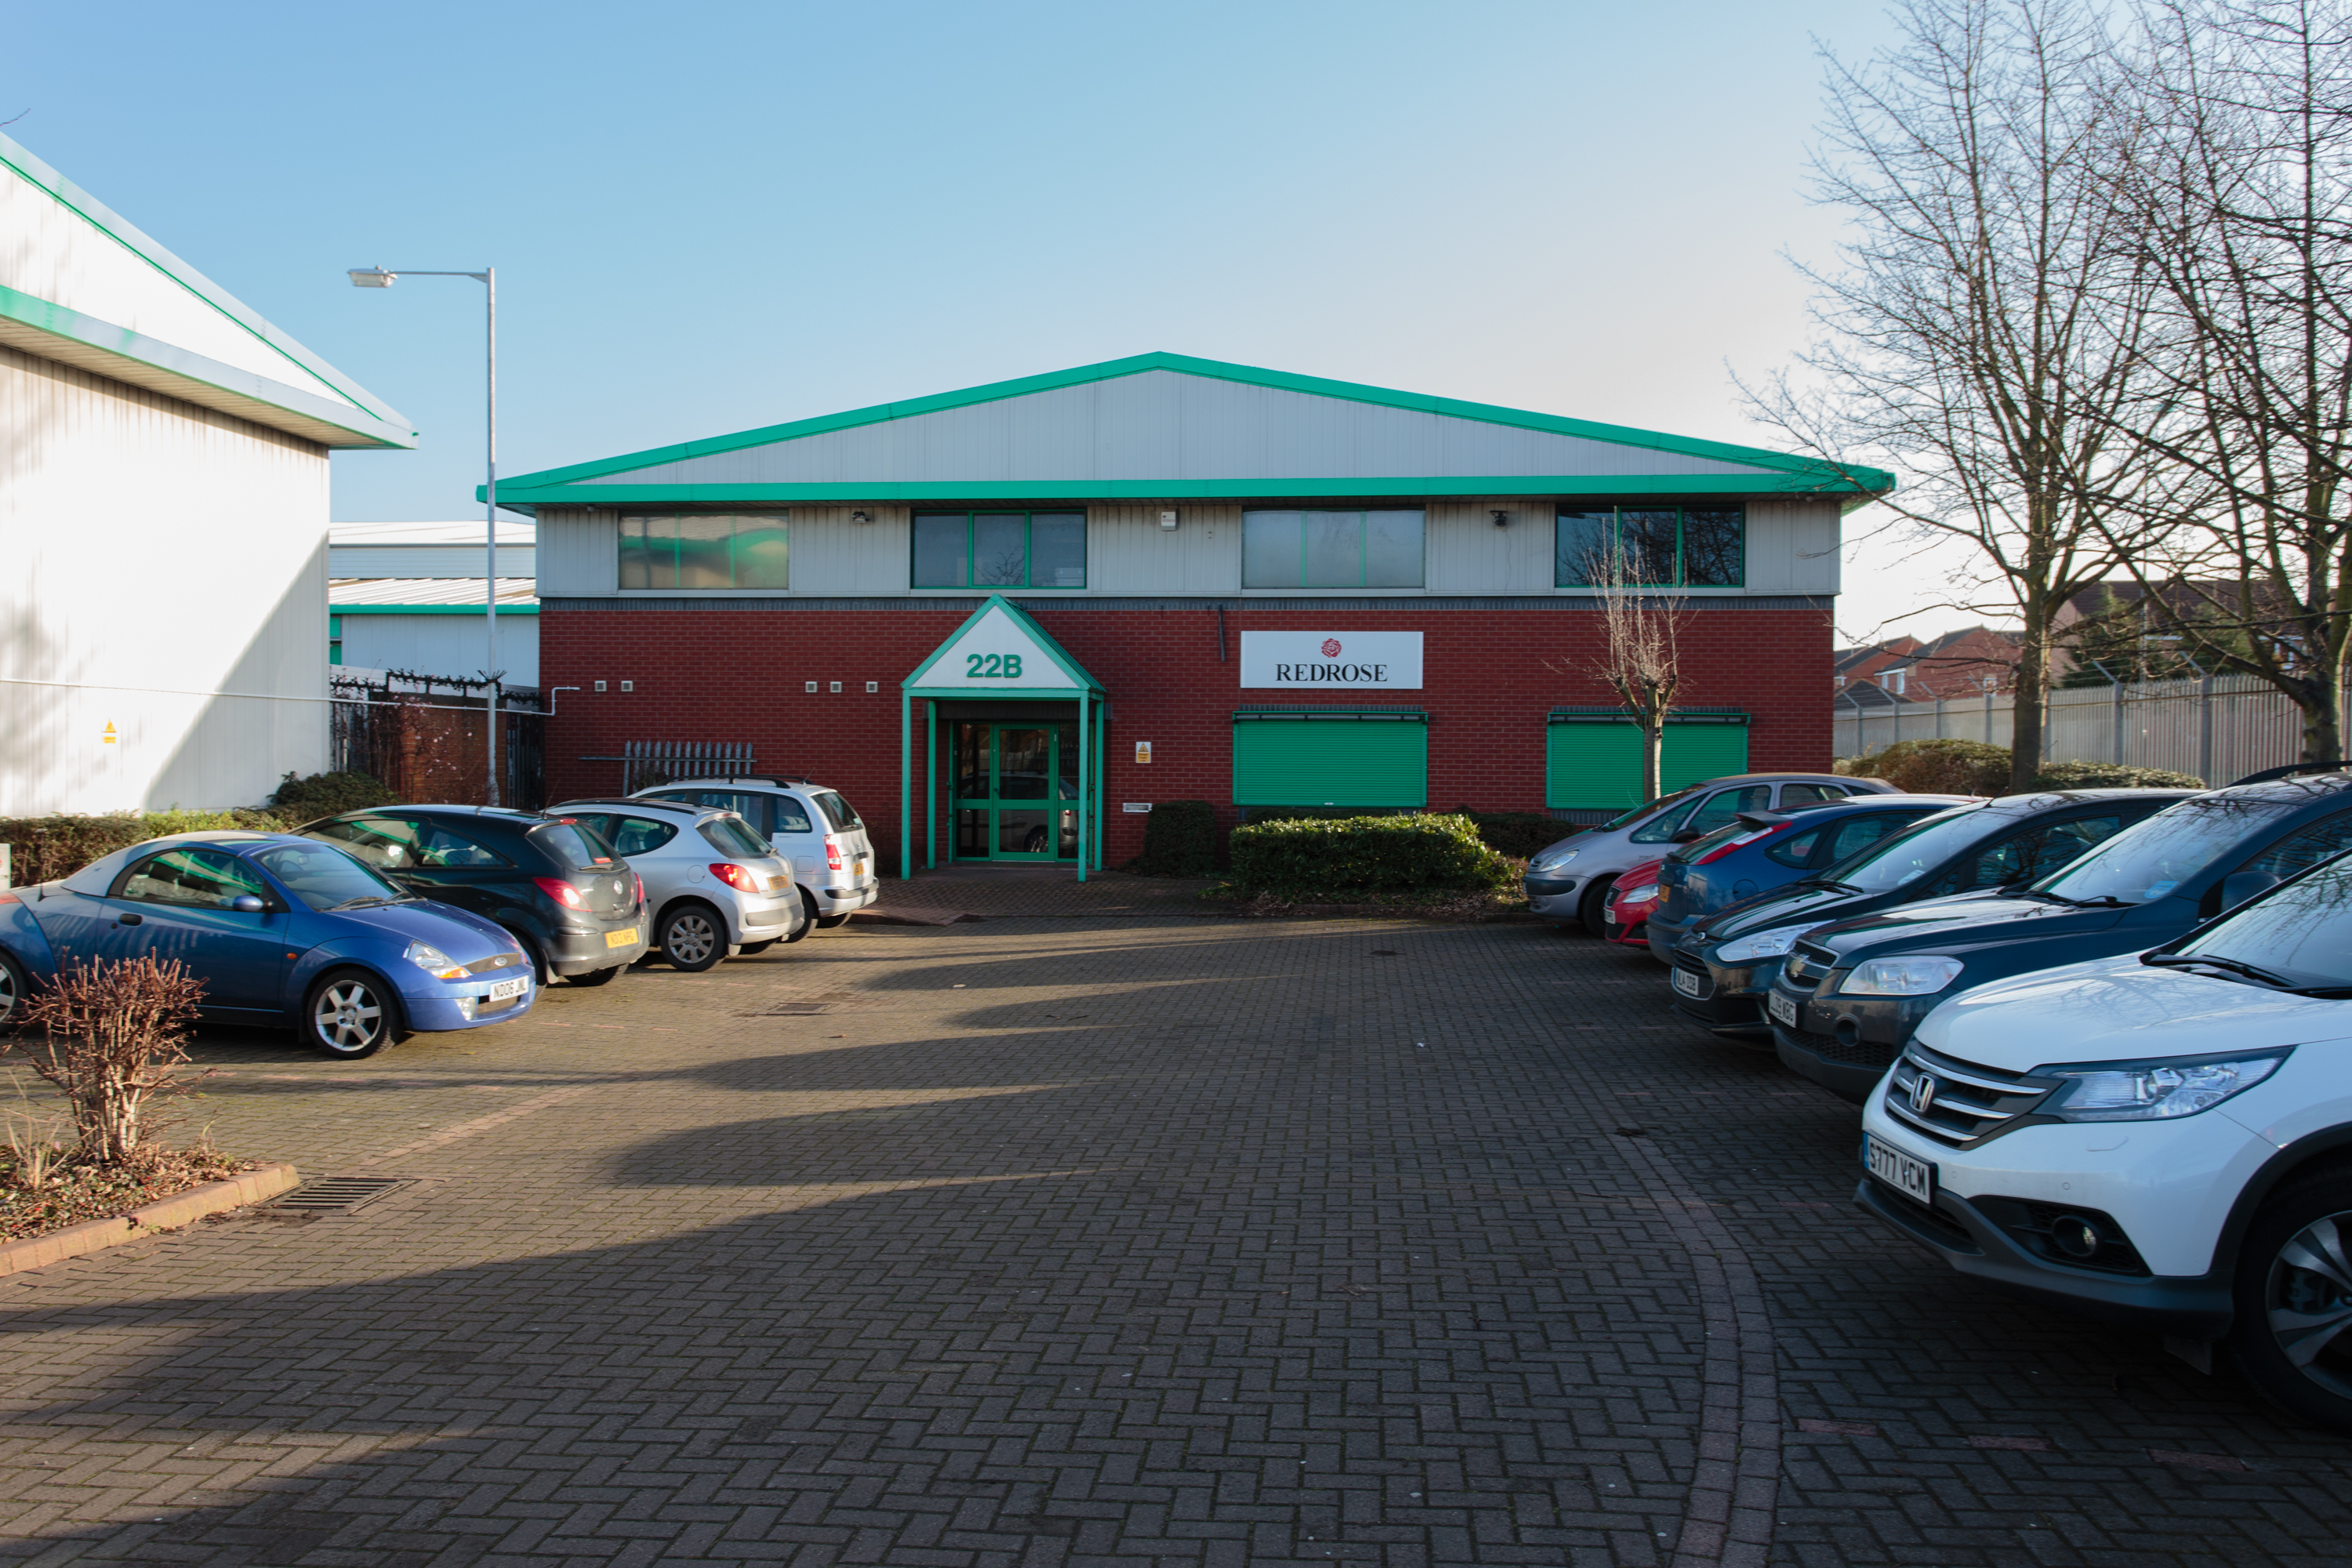 Main Entrance, Bizspace, Dubmire Industrial Estate, Hougton-Le-Spring, Northumberland, DH4